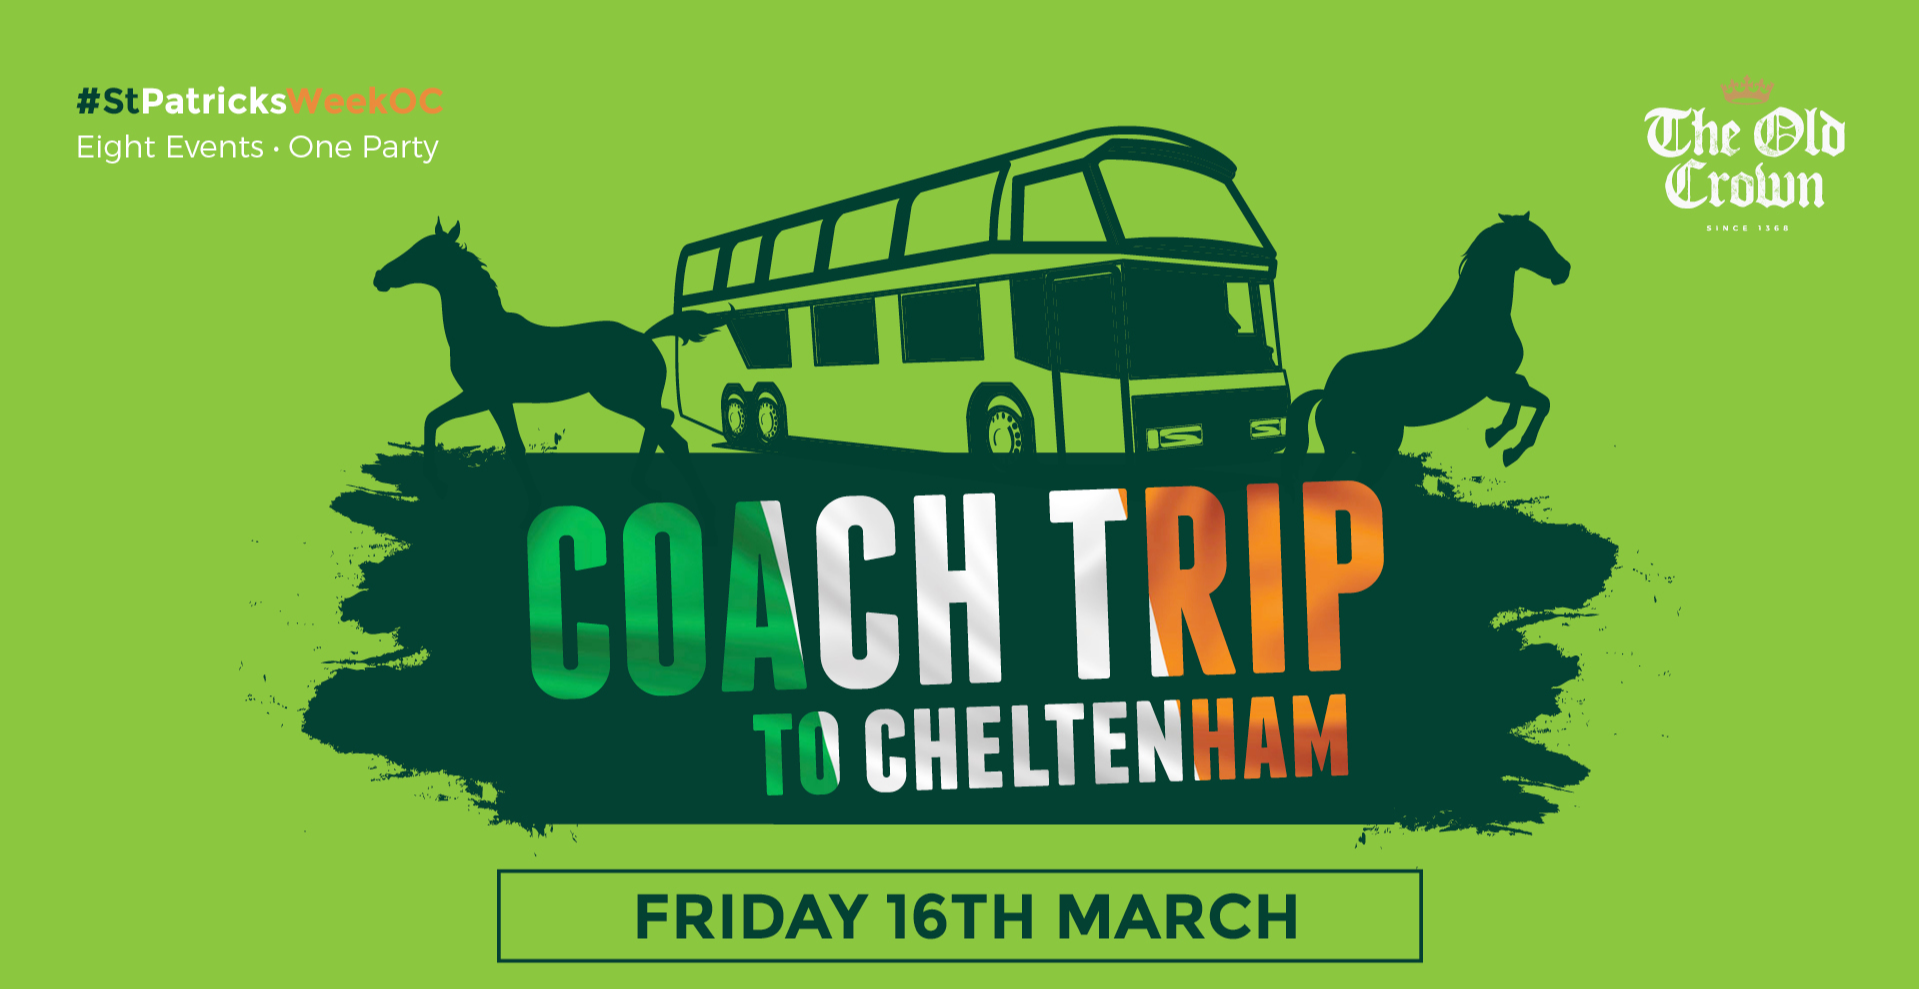 Coach Trip to Cheltenham